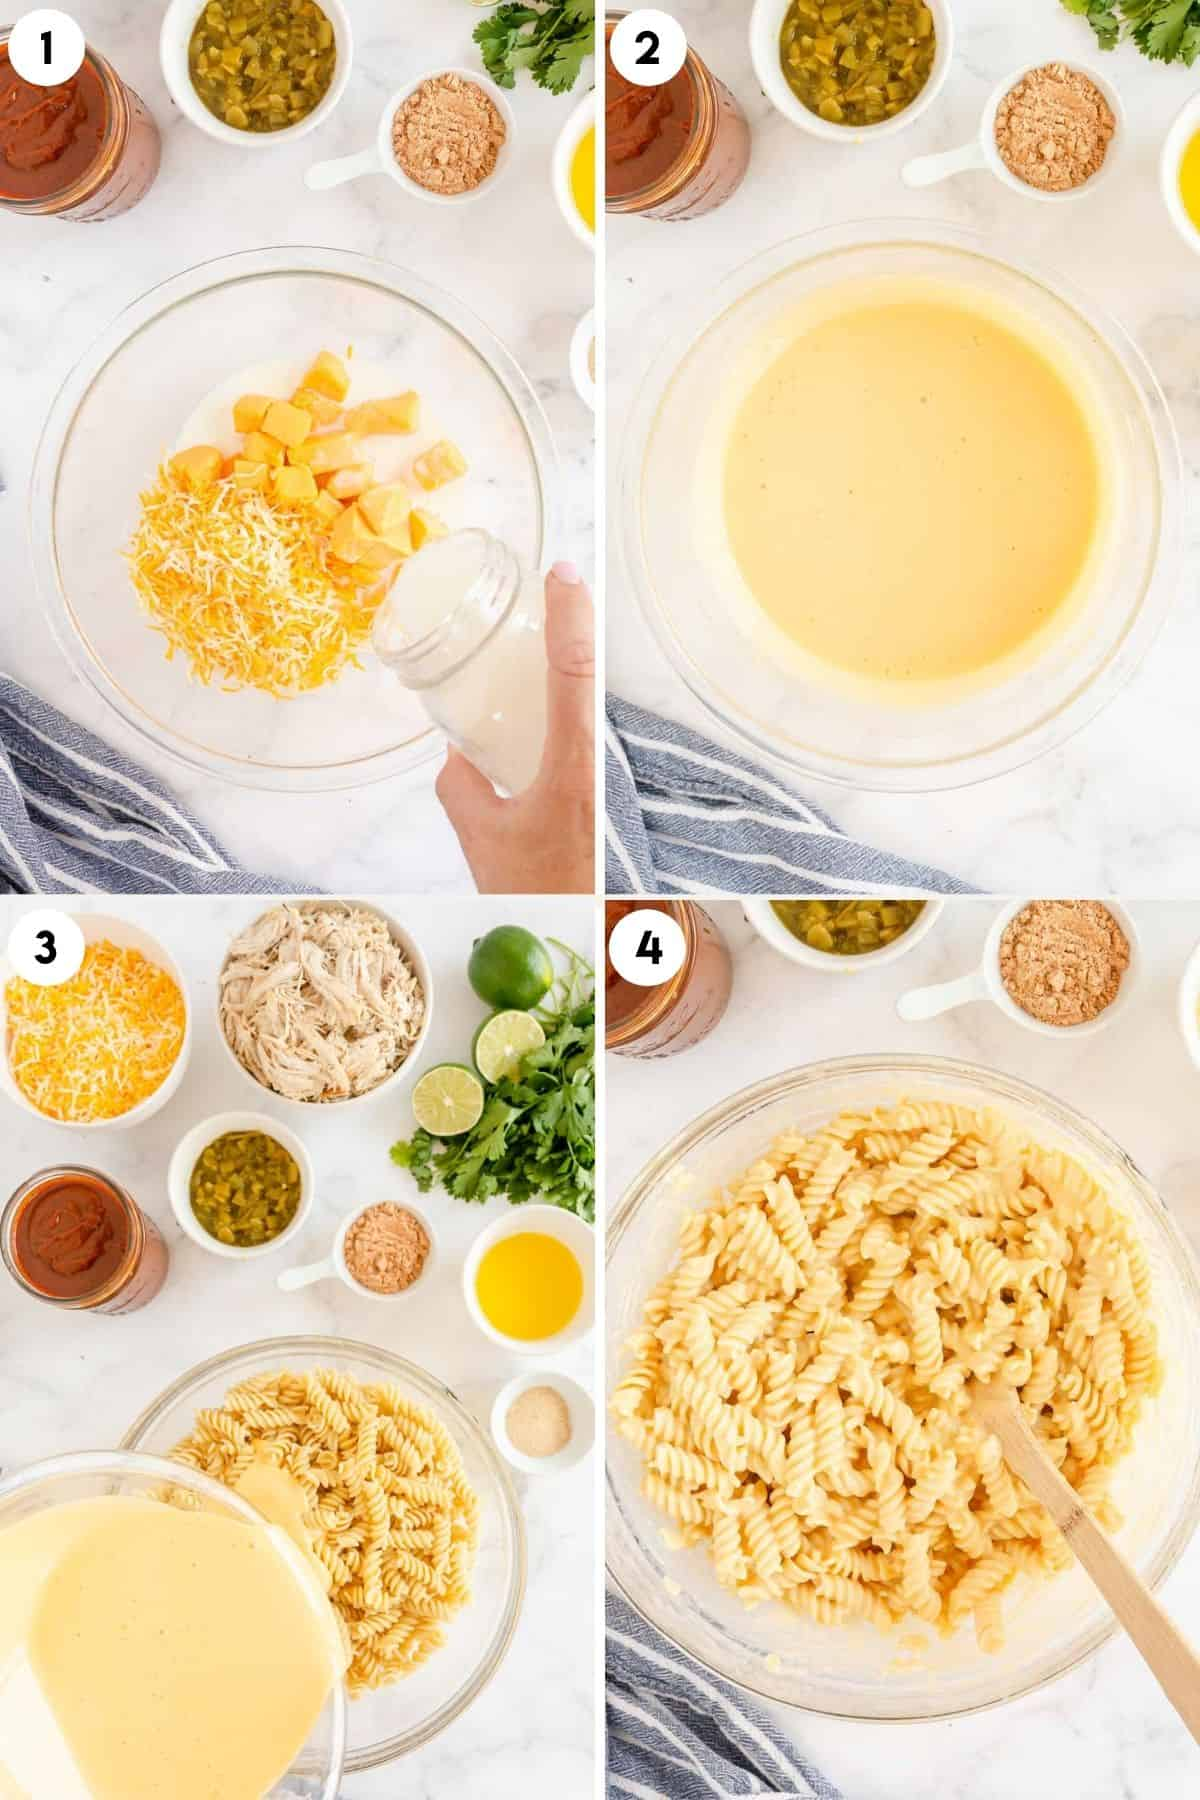 collage of process steps showing melting cheese and adding to pasta